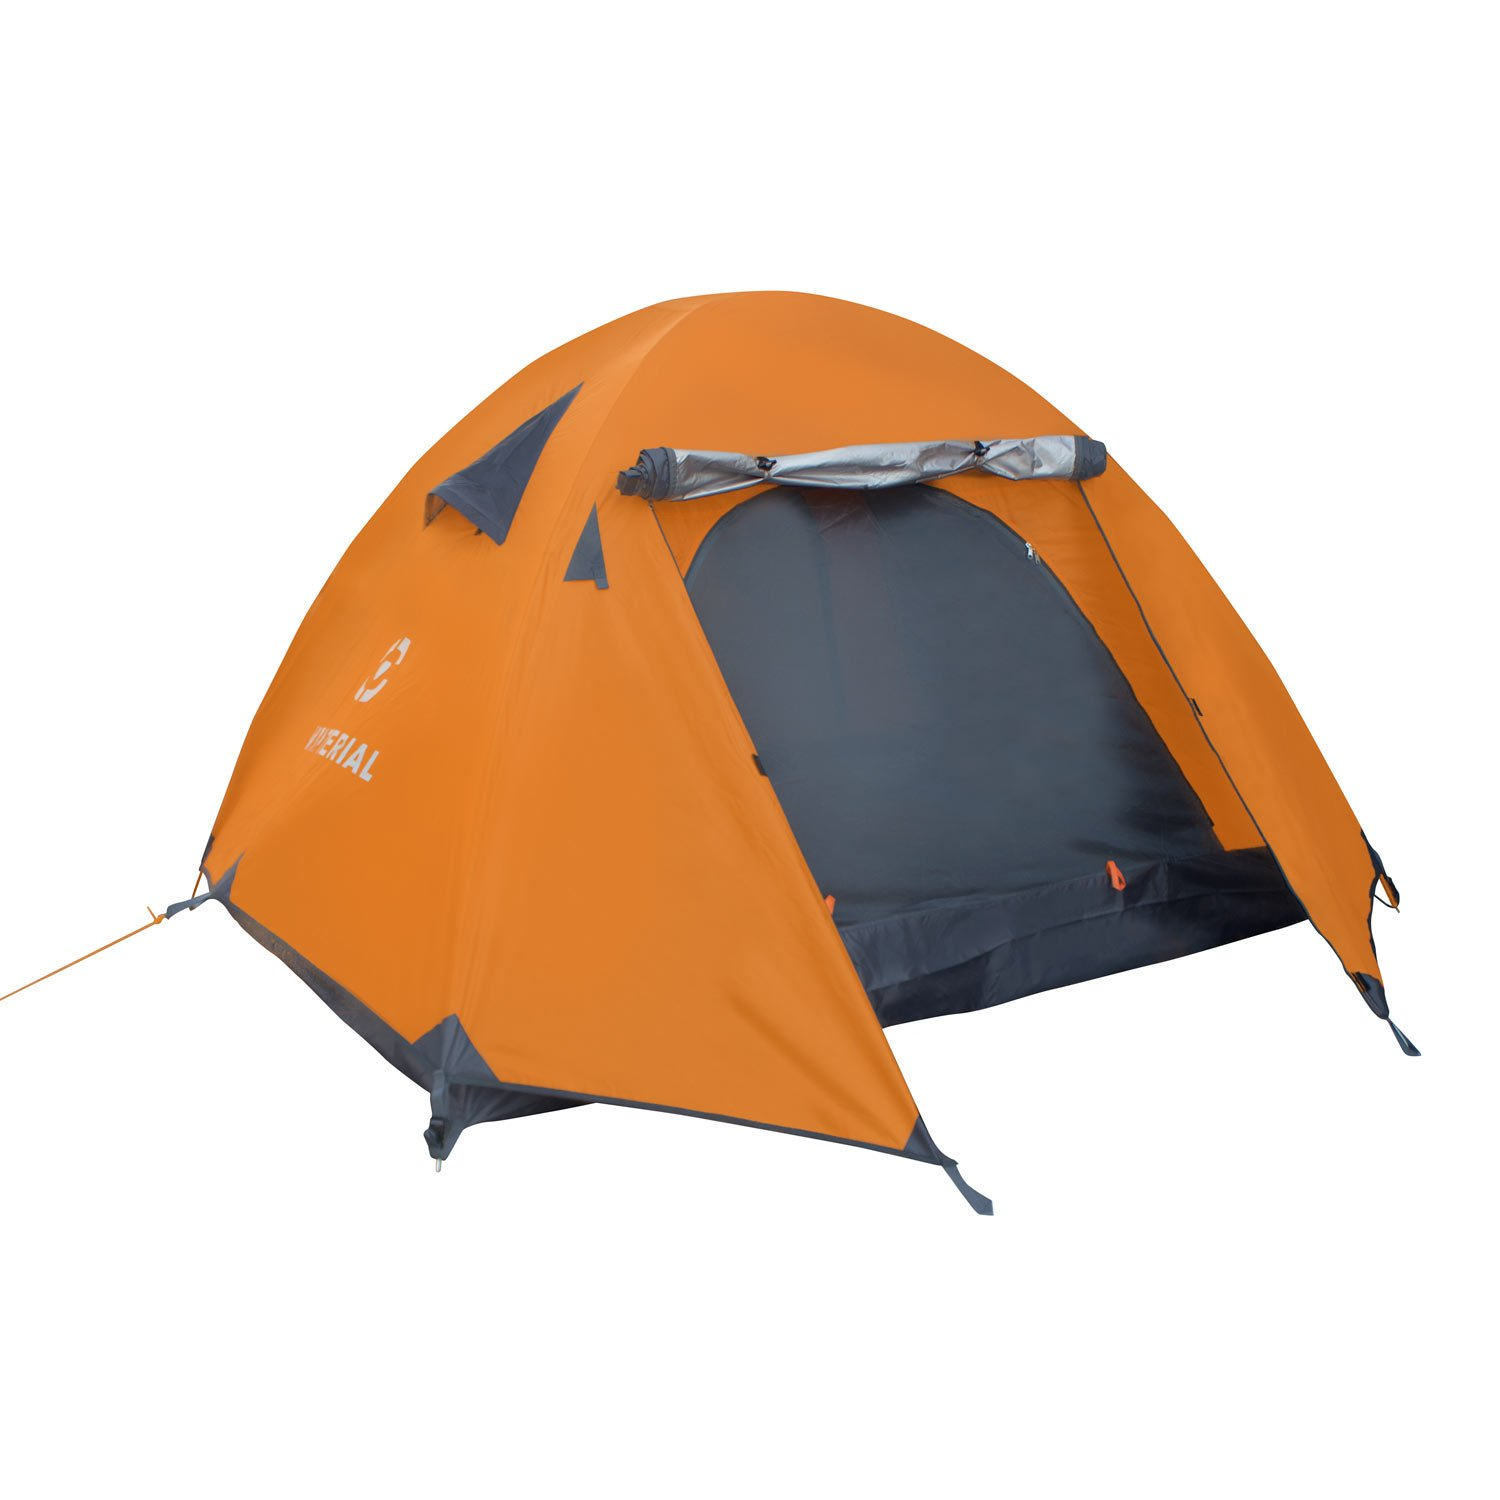 Winterial 3 Person Tent  sc 1 st  ConquerNature & Best Camping Tents Reviews - ConquerNature